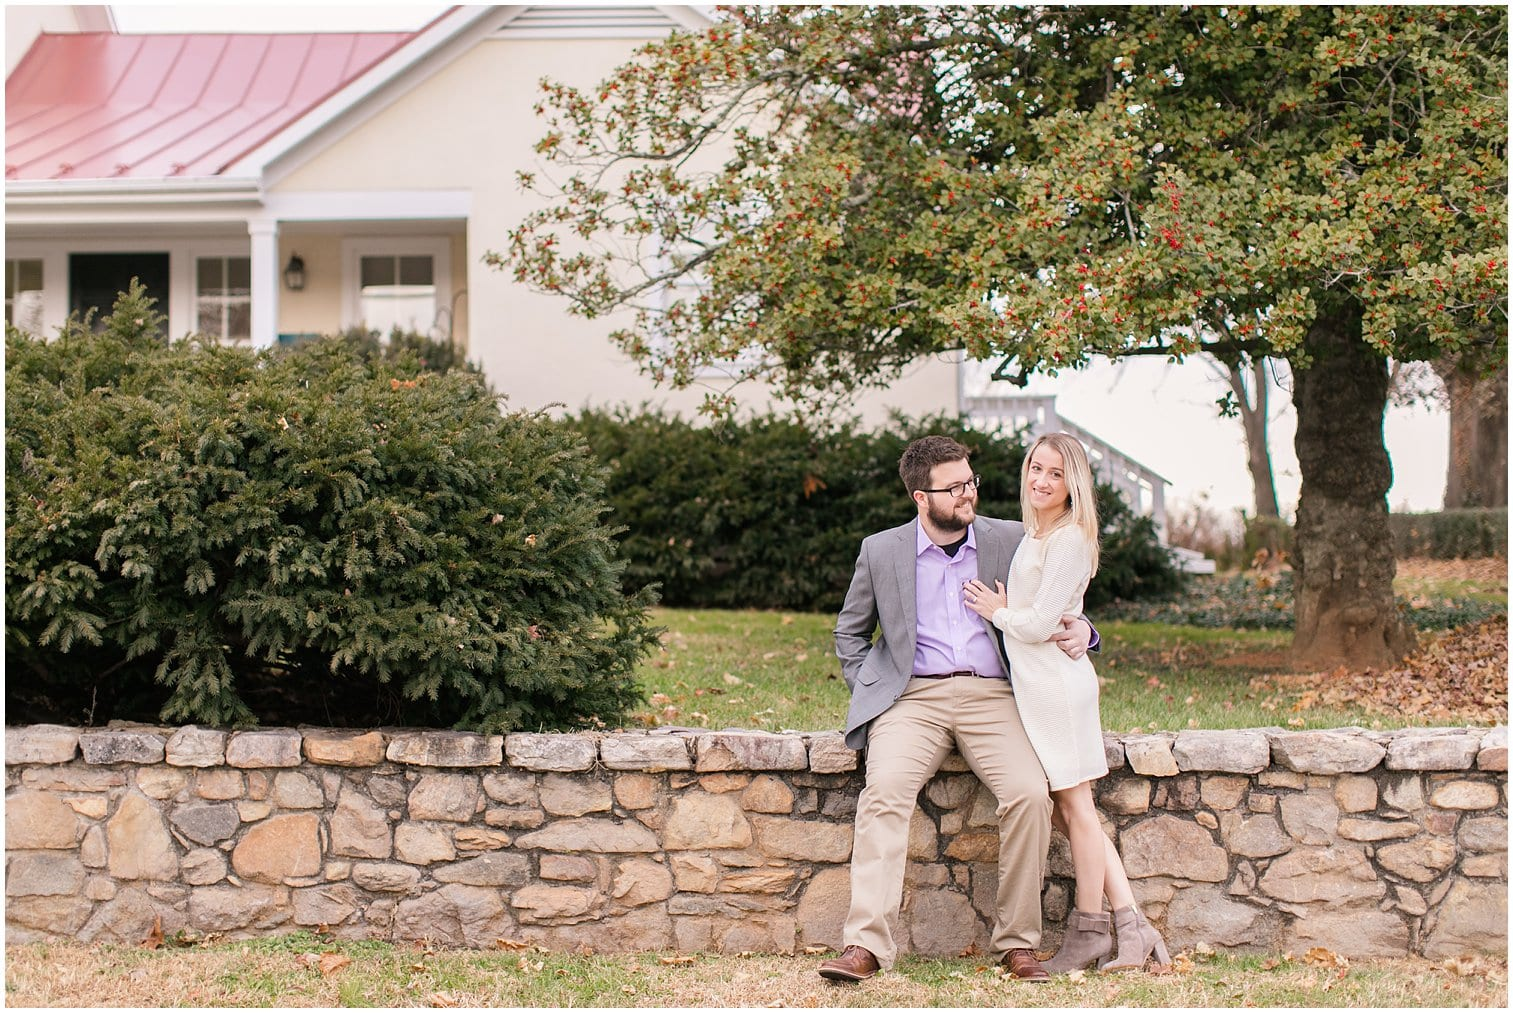 Downtown Middleburg Engagement Photos Virginia Wedding Photographer Megan Kelsey Photography Blair & Mike-188.jpg